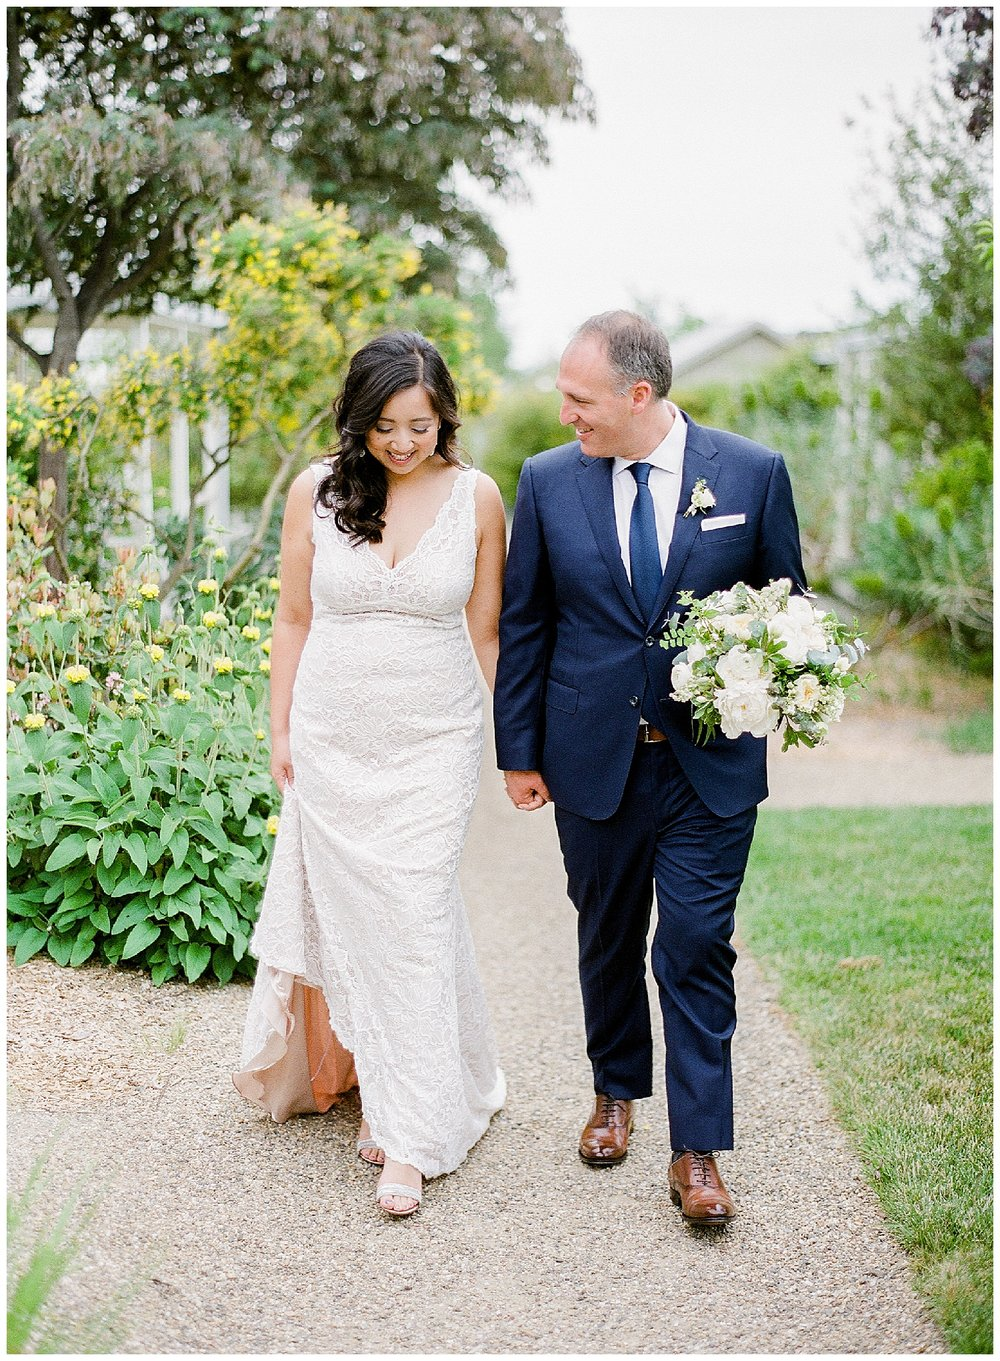 Janine_Licare_Photography_San_Francisco_Wedding_Photographer_Carneros_Tyge_Williams_Sonoma_Napa_0056.jpg